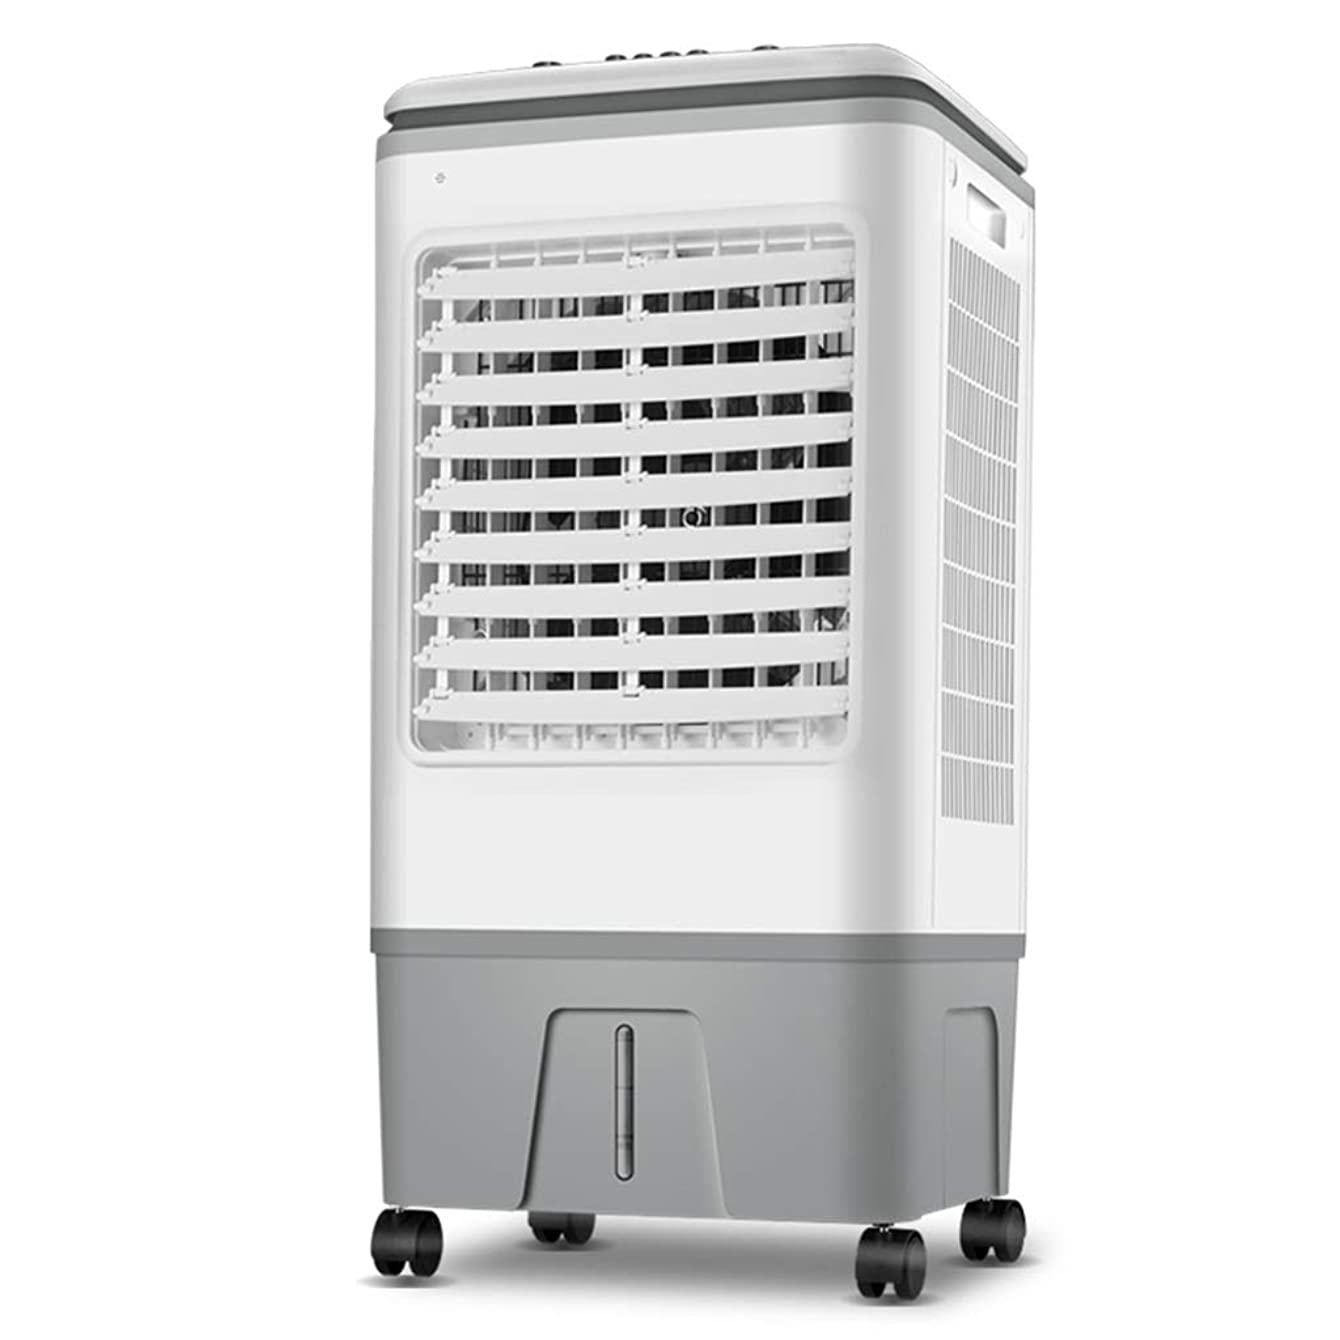 Mobile Air Conditioner Fan with Remote Control, Portable Evaporative Air Cooler, 3 Speeds Cooling Fan, Water-Cooled air Conditioner 18 Hour Timer and 17 Litre Water Tank